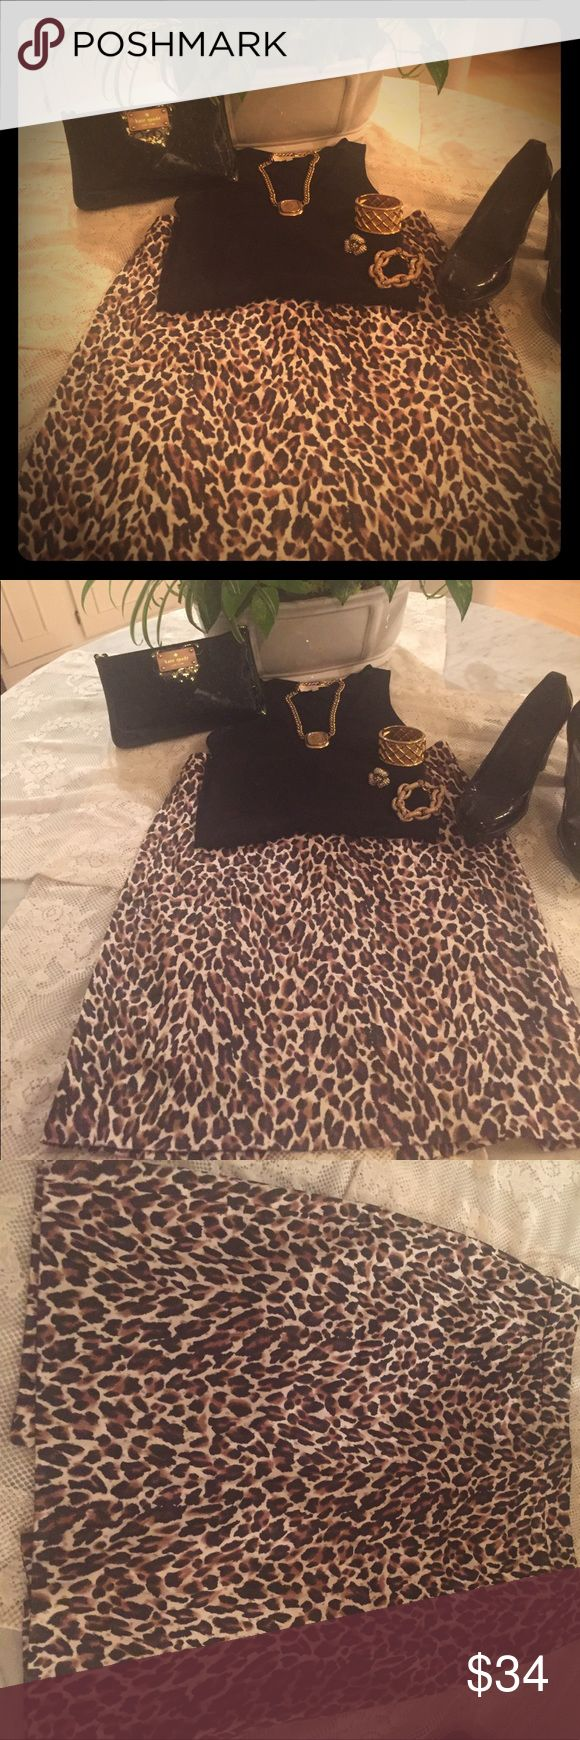 J.Crew Leopard SEXY Leopard Pencil Skirt Perfect cotton size 8 Jew Crew Leopard Skirt! Wear all year round! Slit in the back w slight tear which has been sewn. Hard to notice, but FYI! I love this skirt, but just too big for me:) J. Crew Skirts Midi